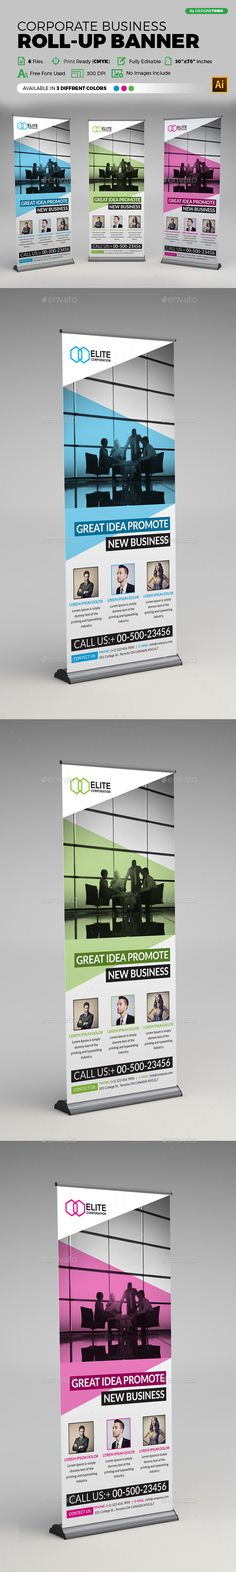 Corporate Business Roll-up Banner Template Vector EPS, AI. Download here…